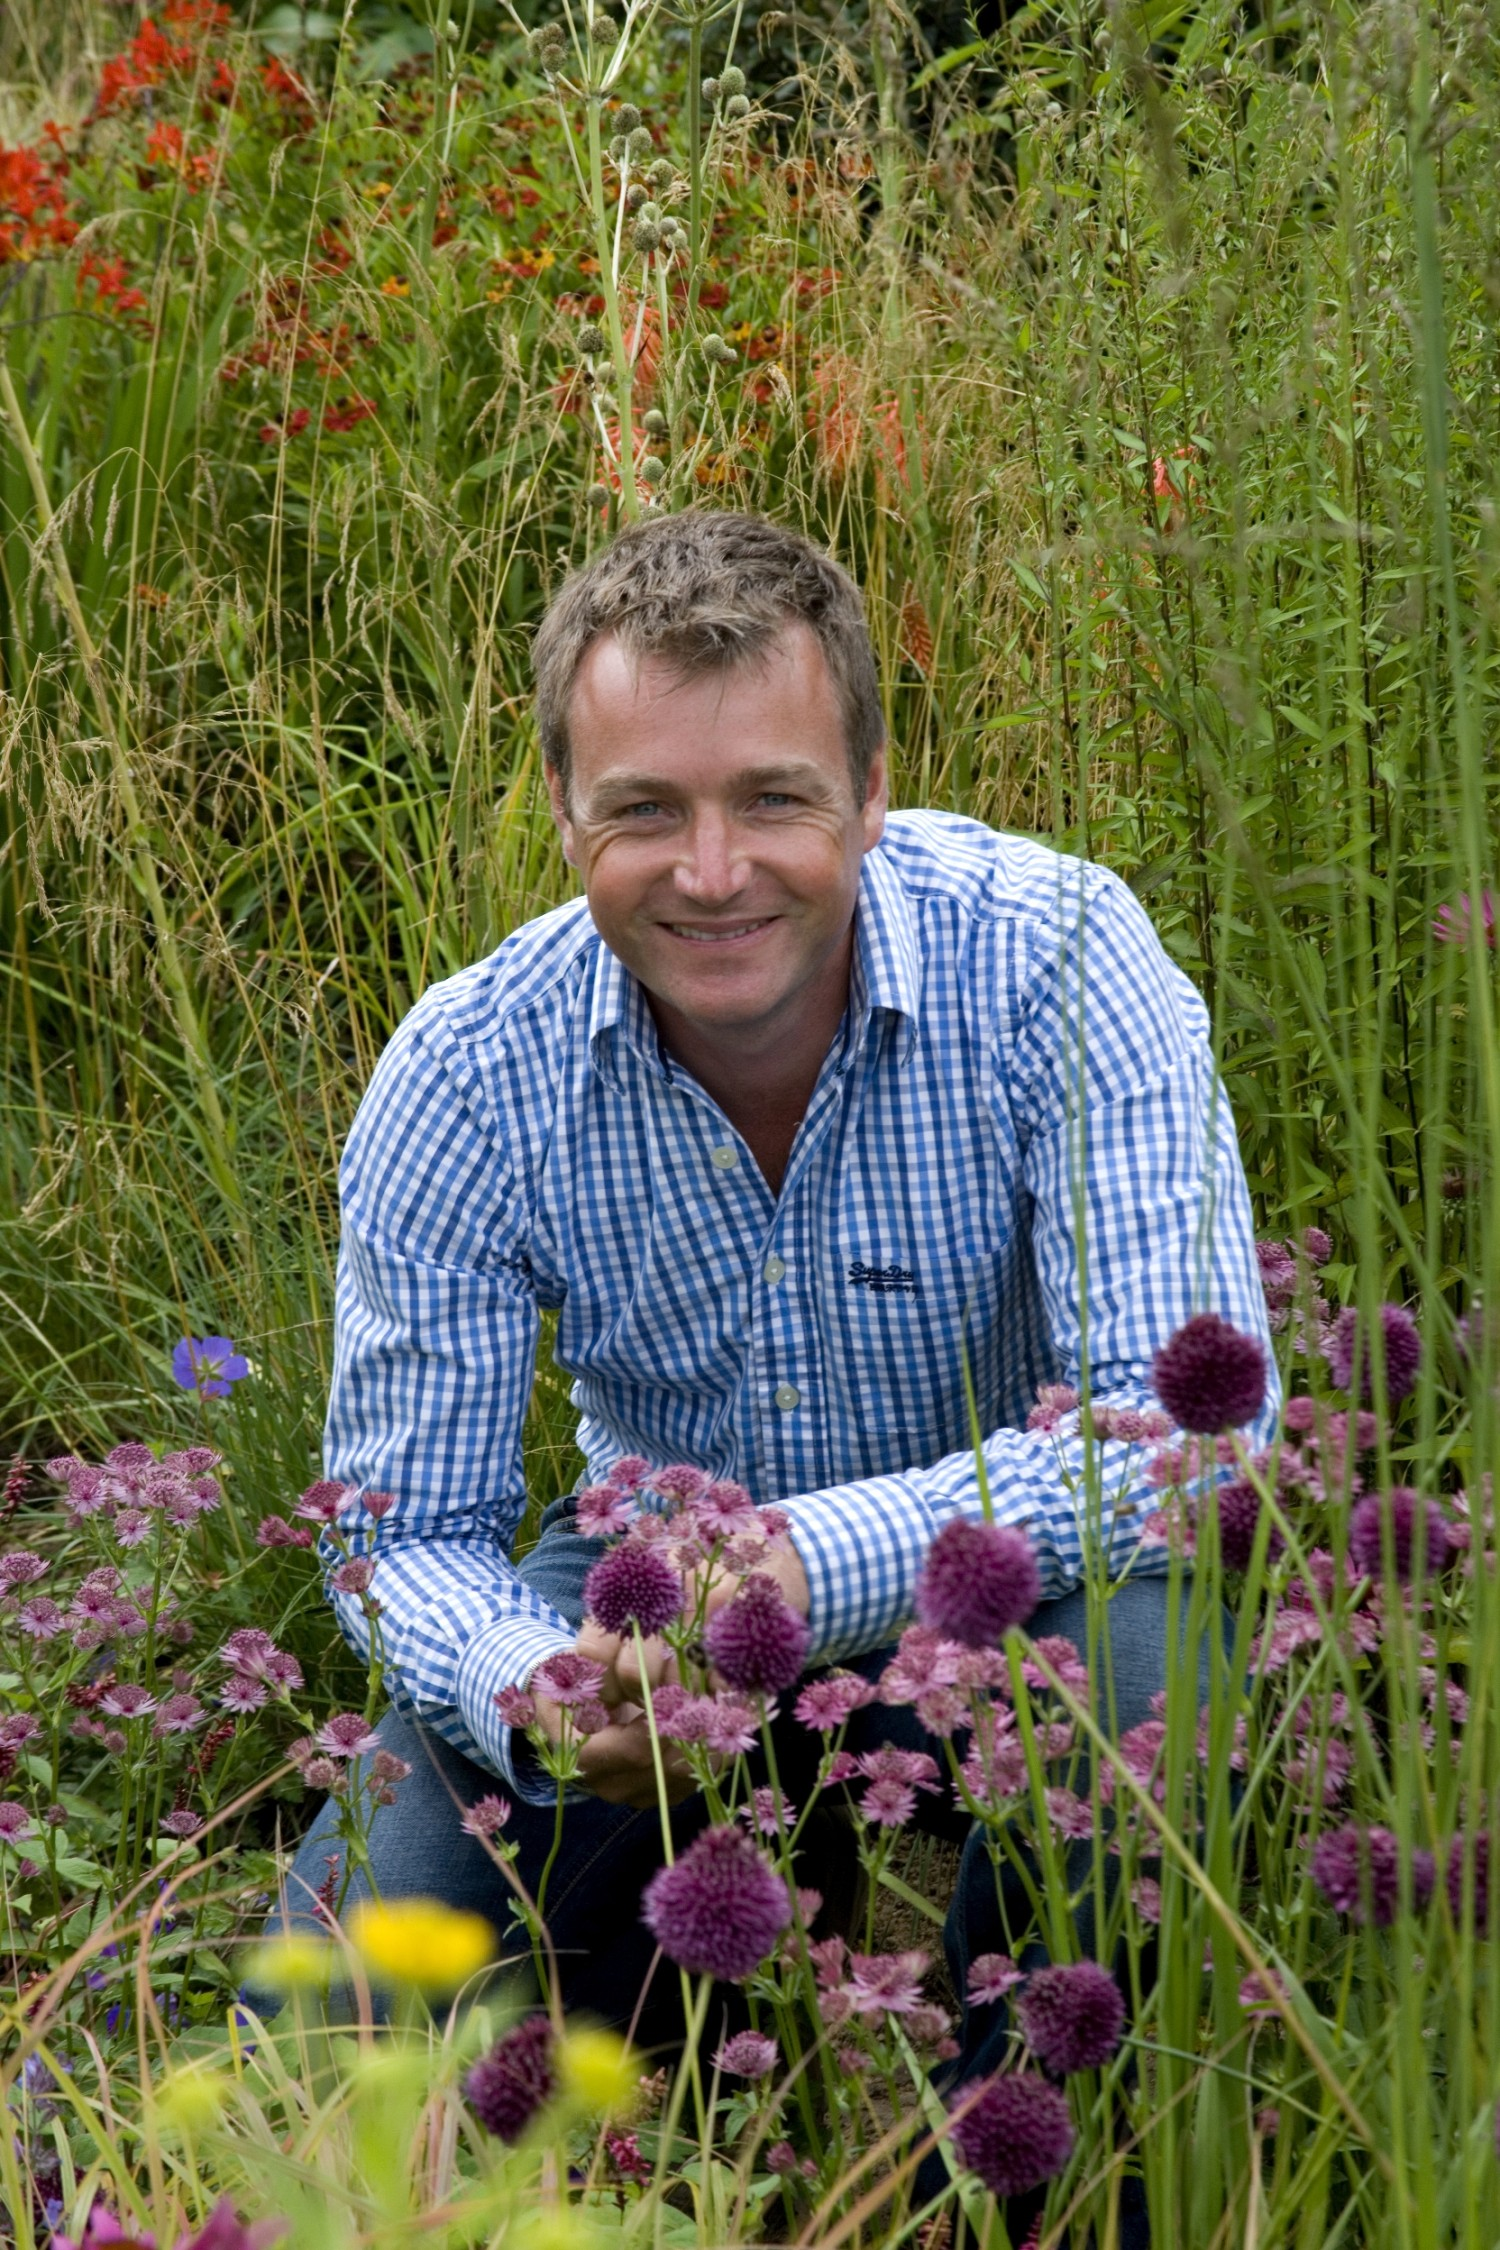 Chris Beardshaw will be attending the 20th annual Arley Garden Festival and having breakfast with a lucky winner.